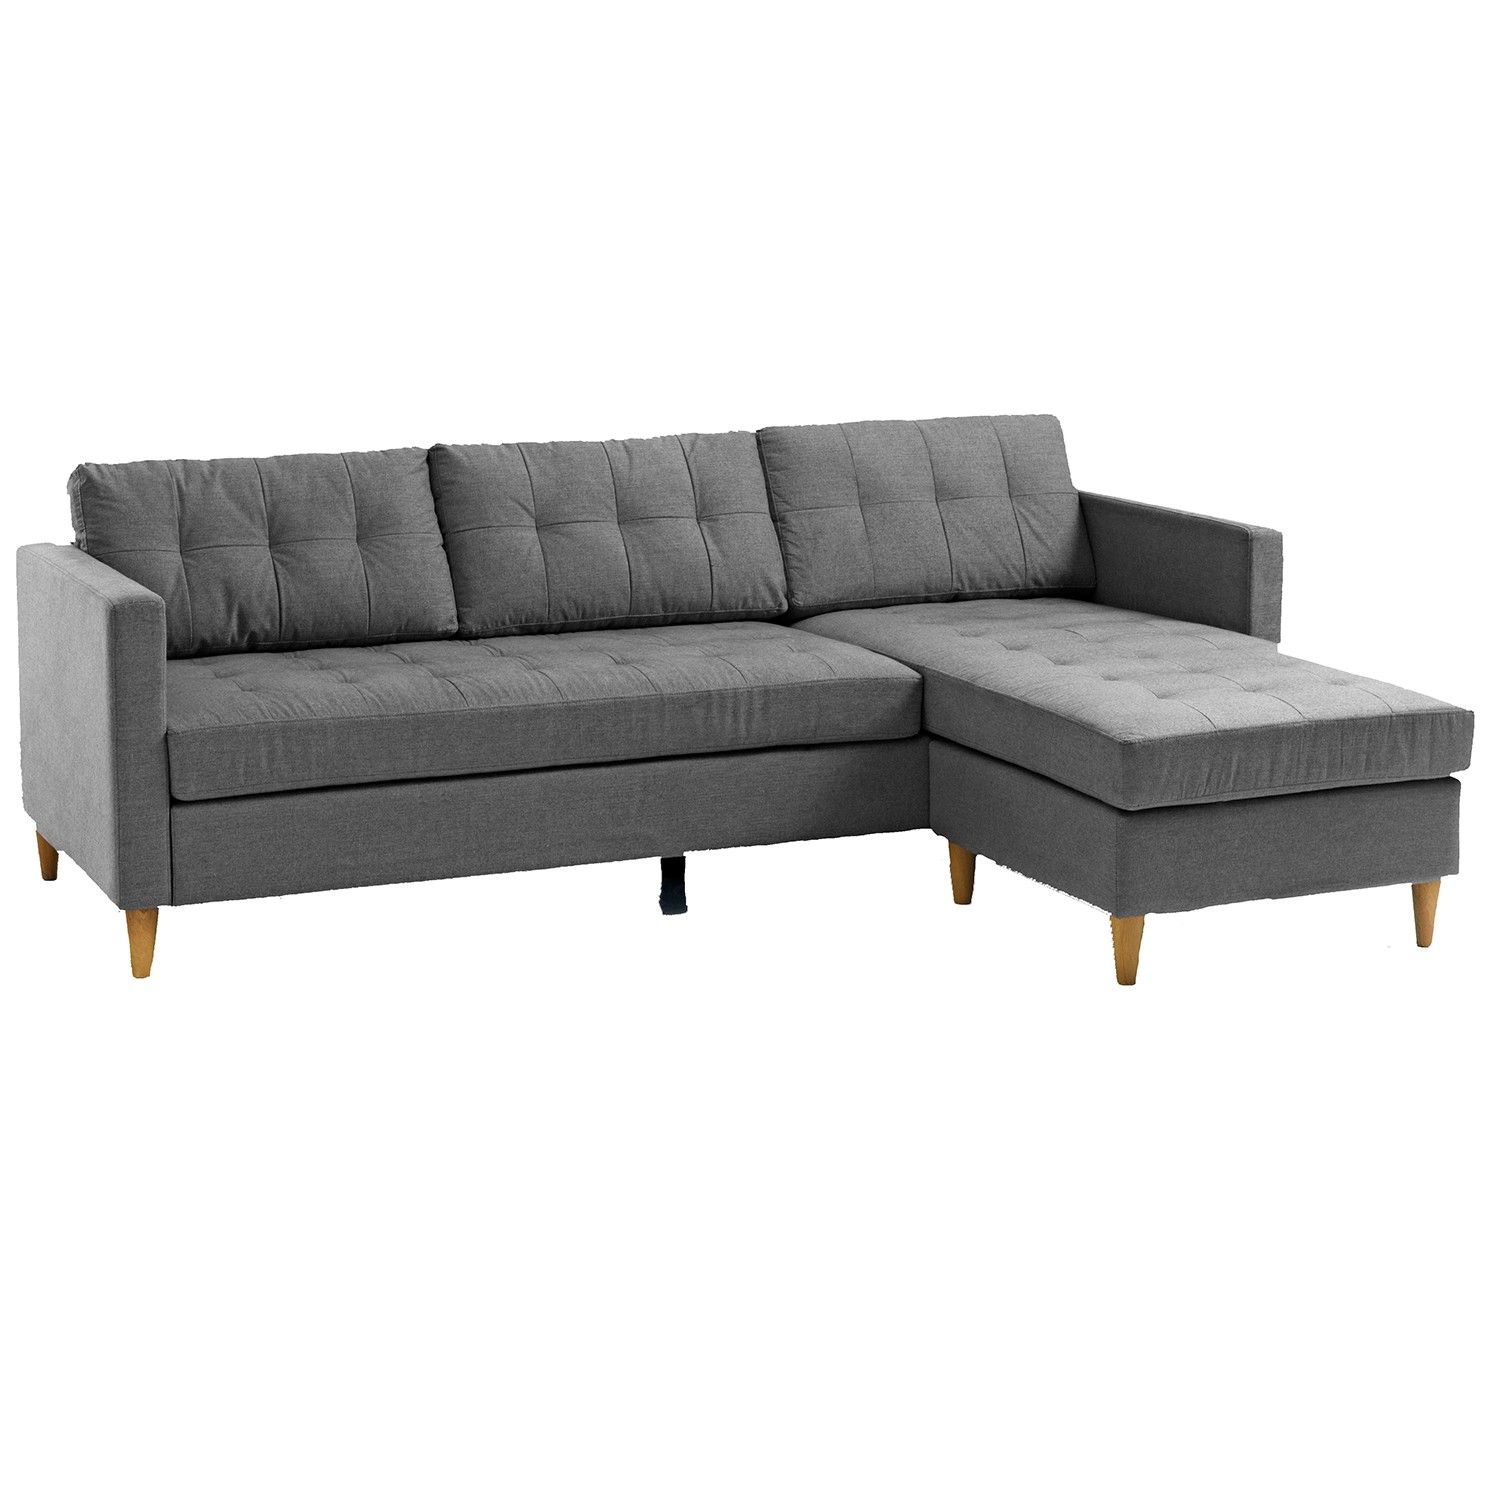 FALSLEV Sectional Sofa with Chaise (Grey) | Apartment decor ...